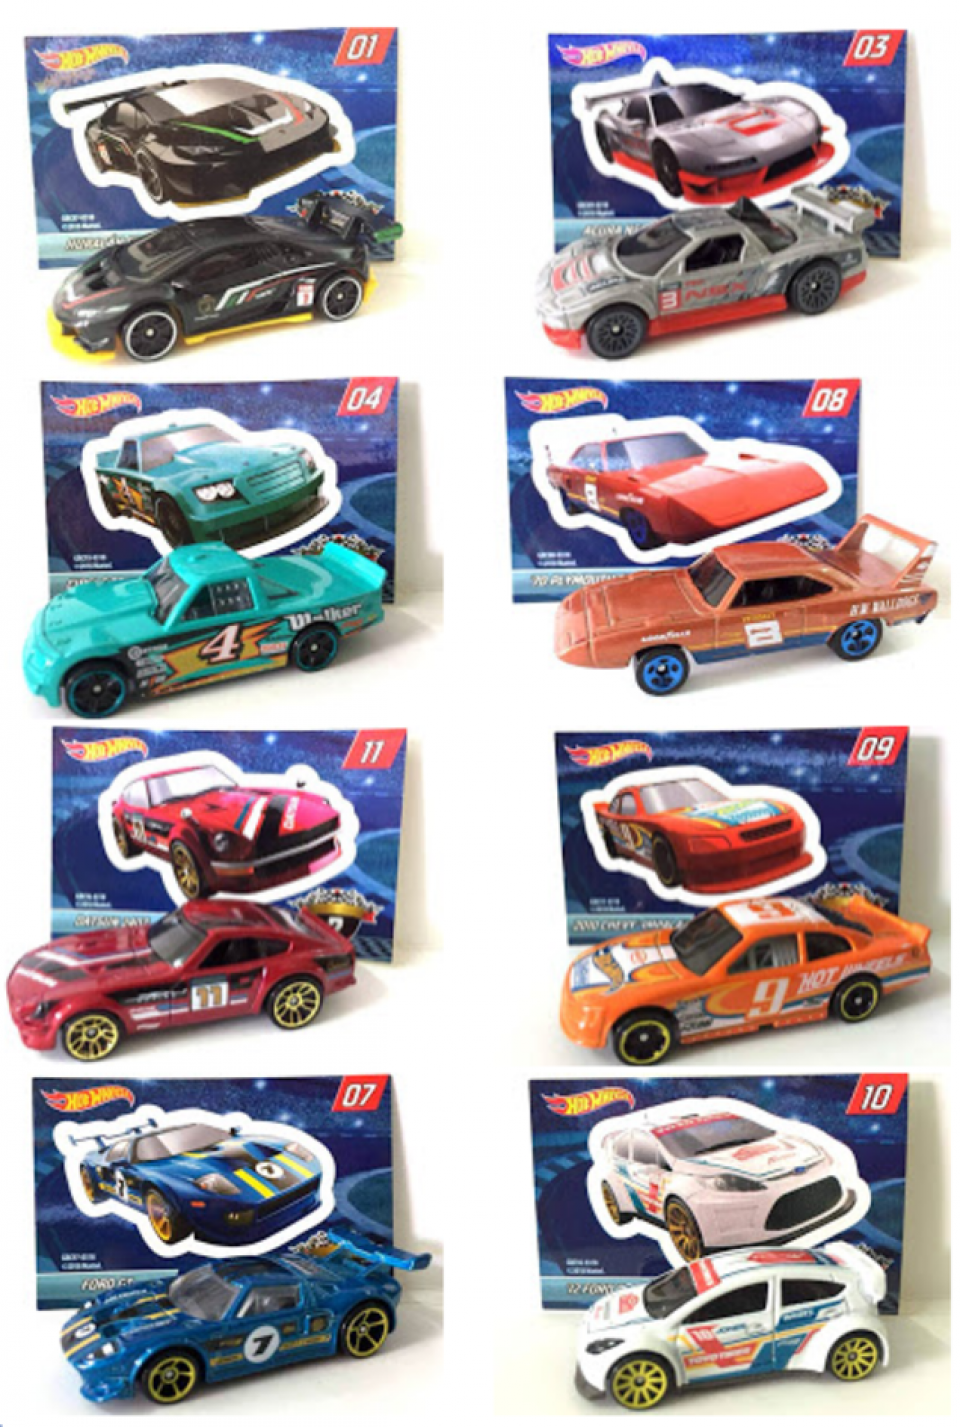 The 2019 Mystery Models are here Mystery, Model, Hot wheels